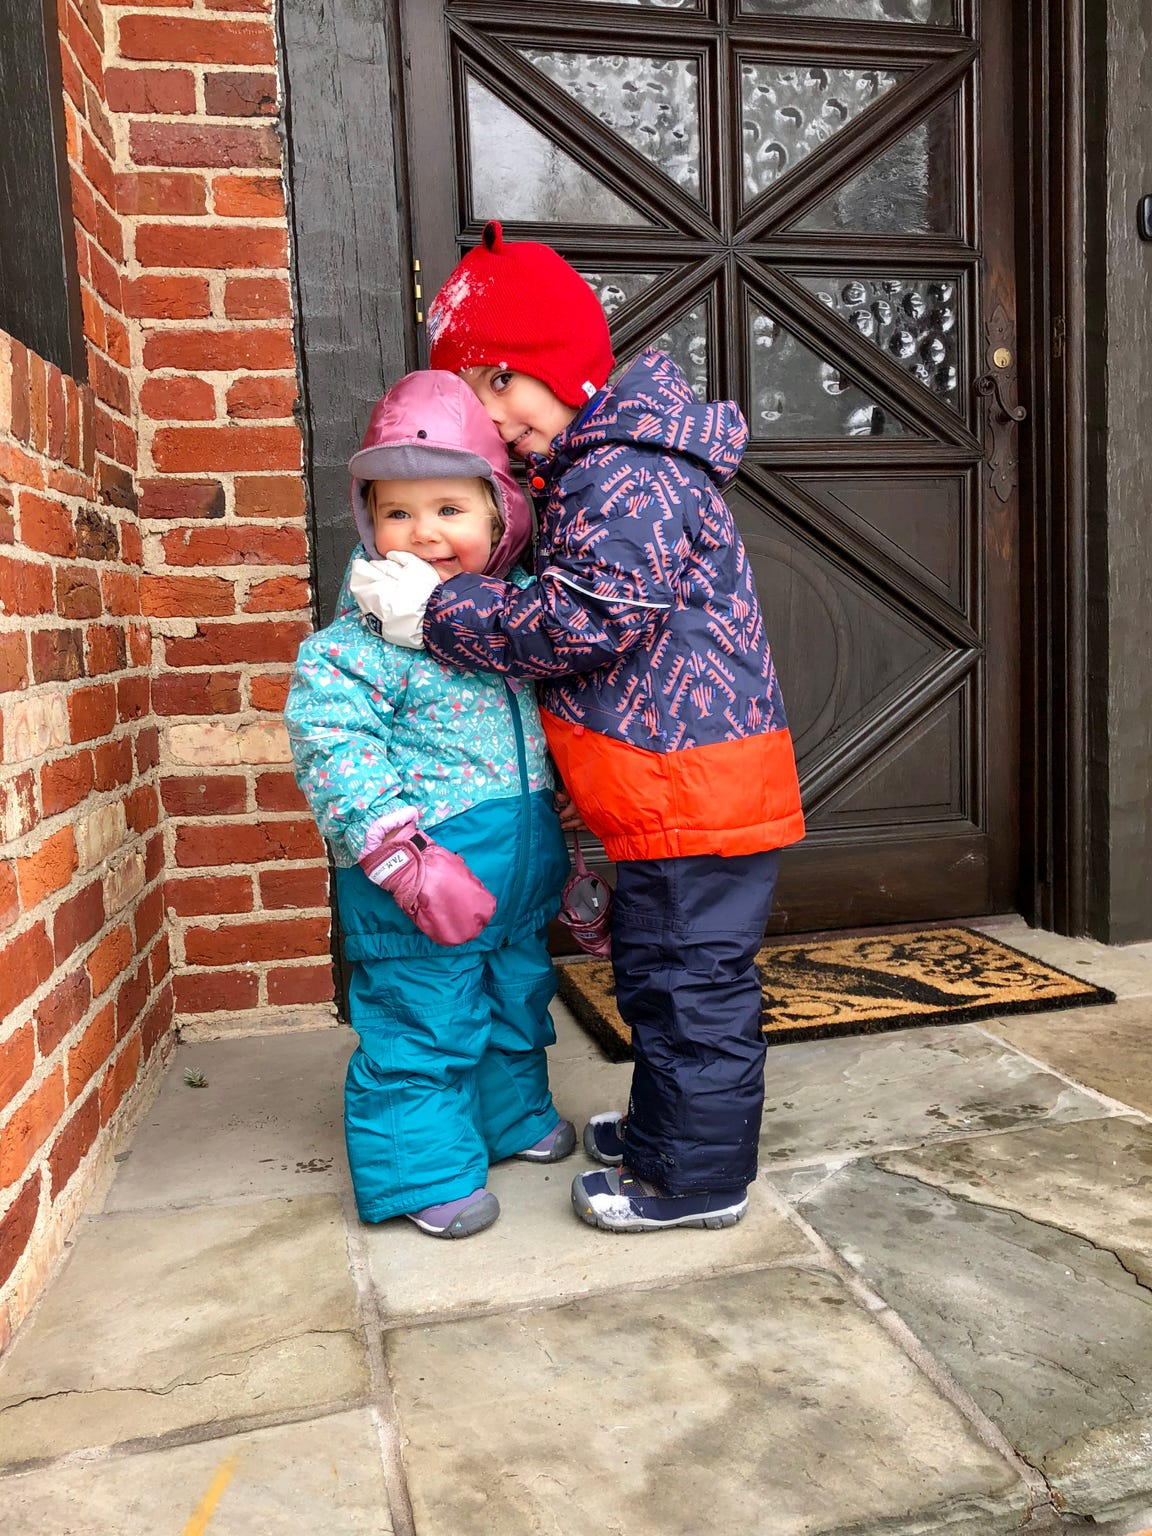 James Crimmins hugs his sister Lily outside of their home.